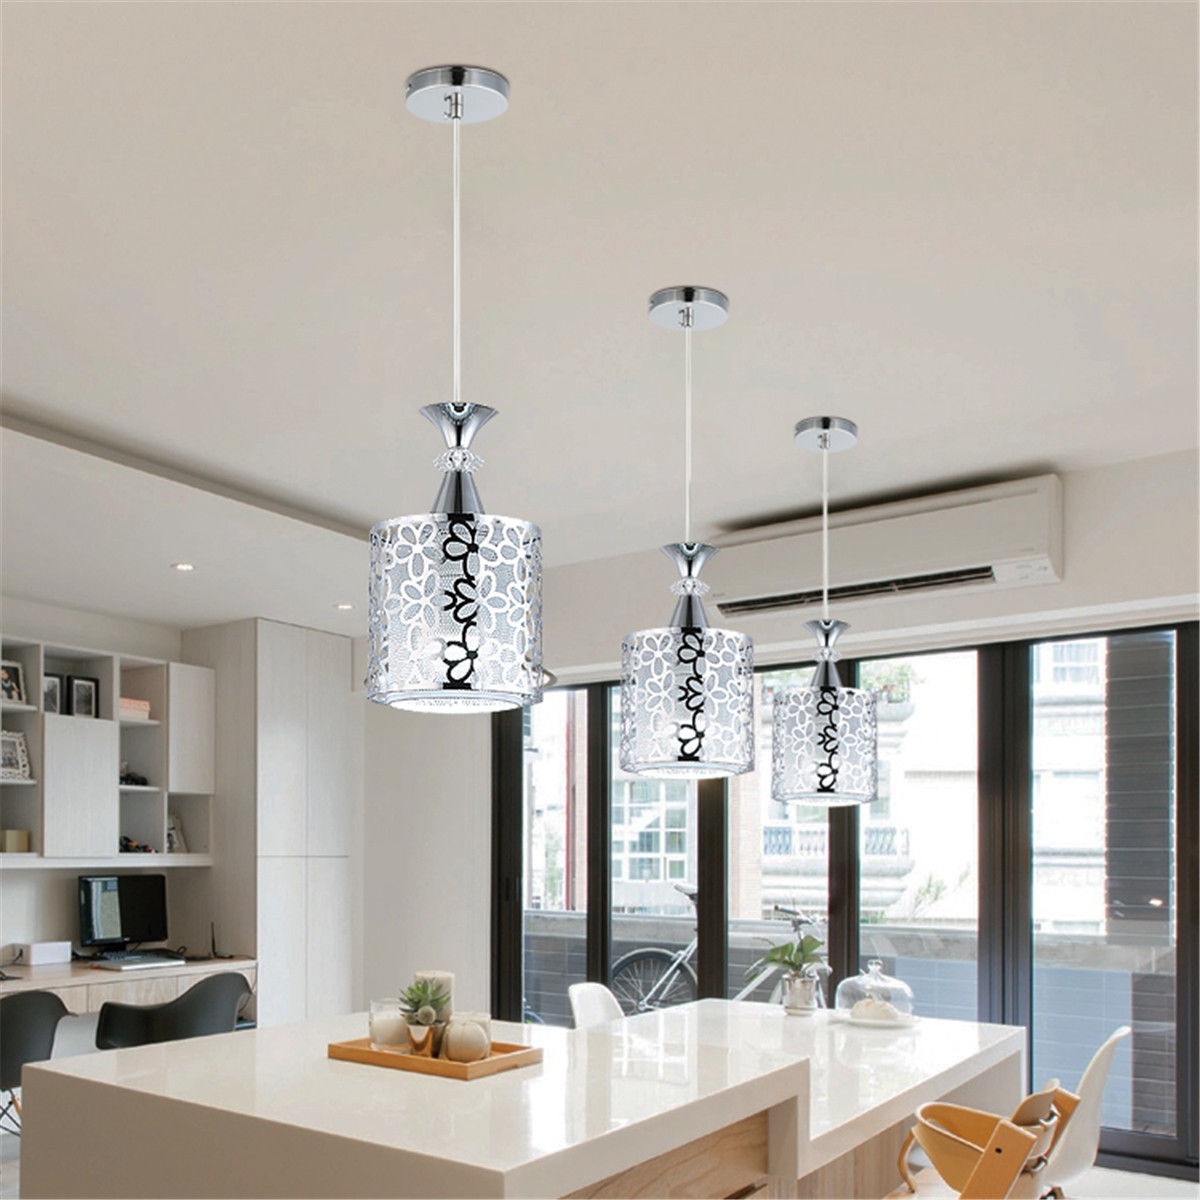 Details about ceiling light modern crystal iron pendant lamp dining room chandelier decor